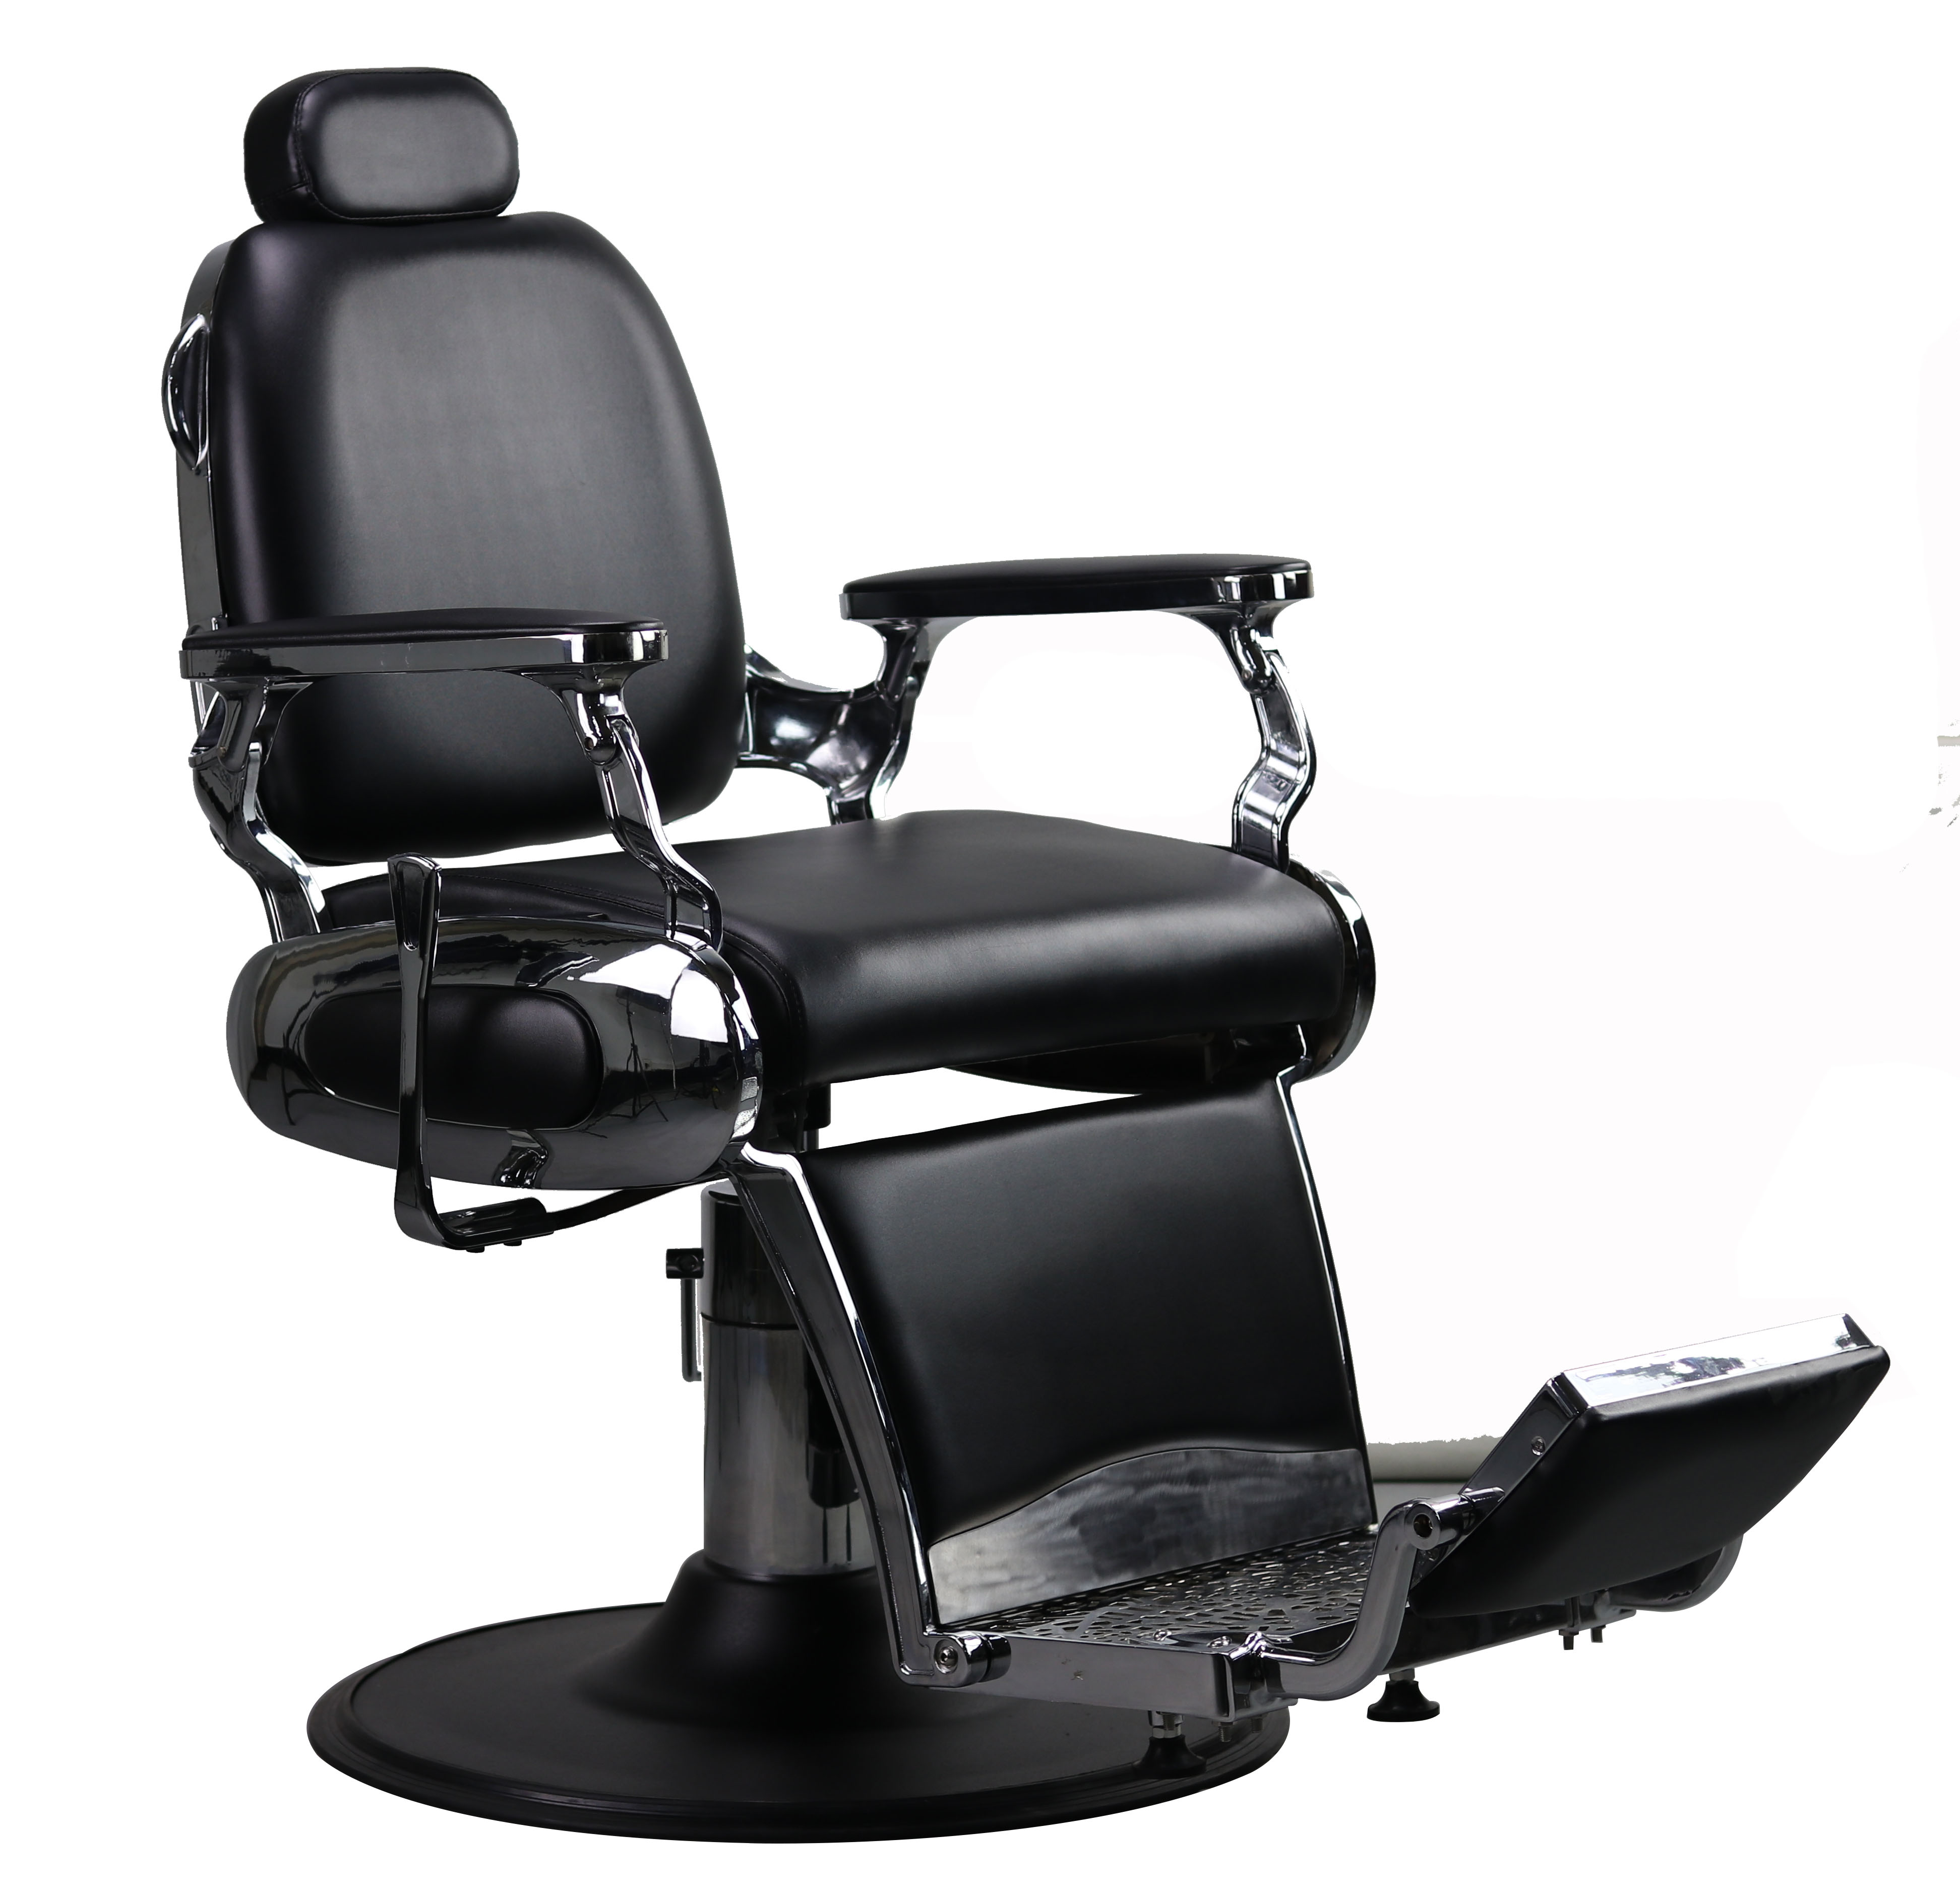 DTY hydraulic pump hair barber chair classic <strong>beauty</strong> <strong>salon</strong> <strong>equipment</strong> for sale